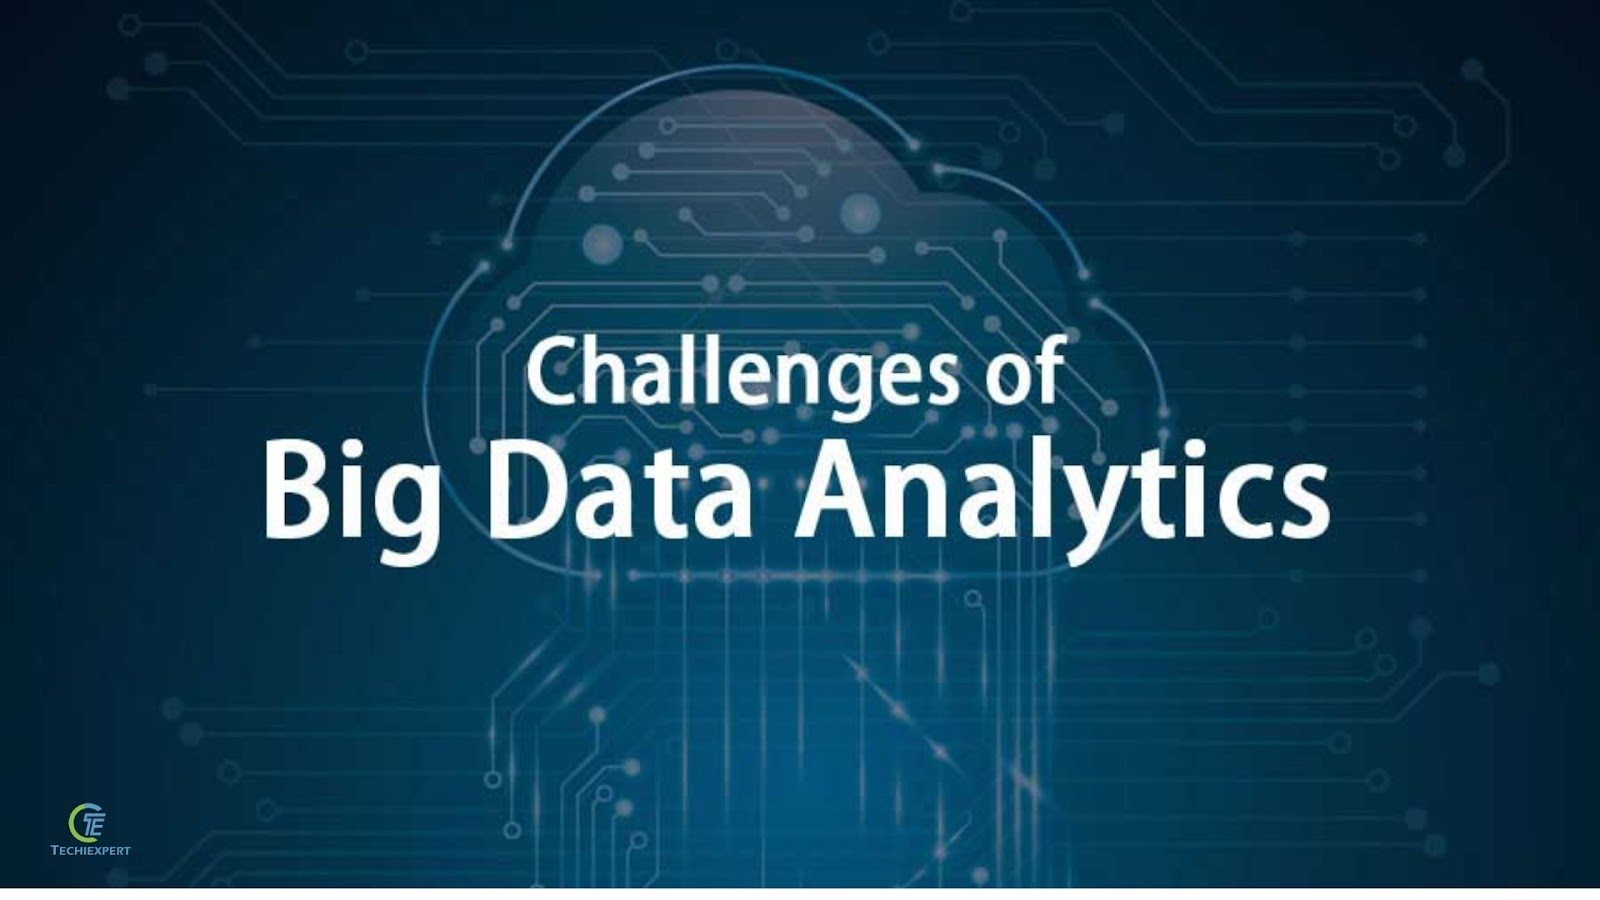 The Challenges of Big Data Analytics